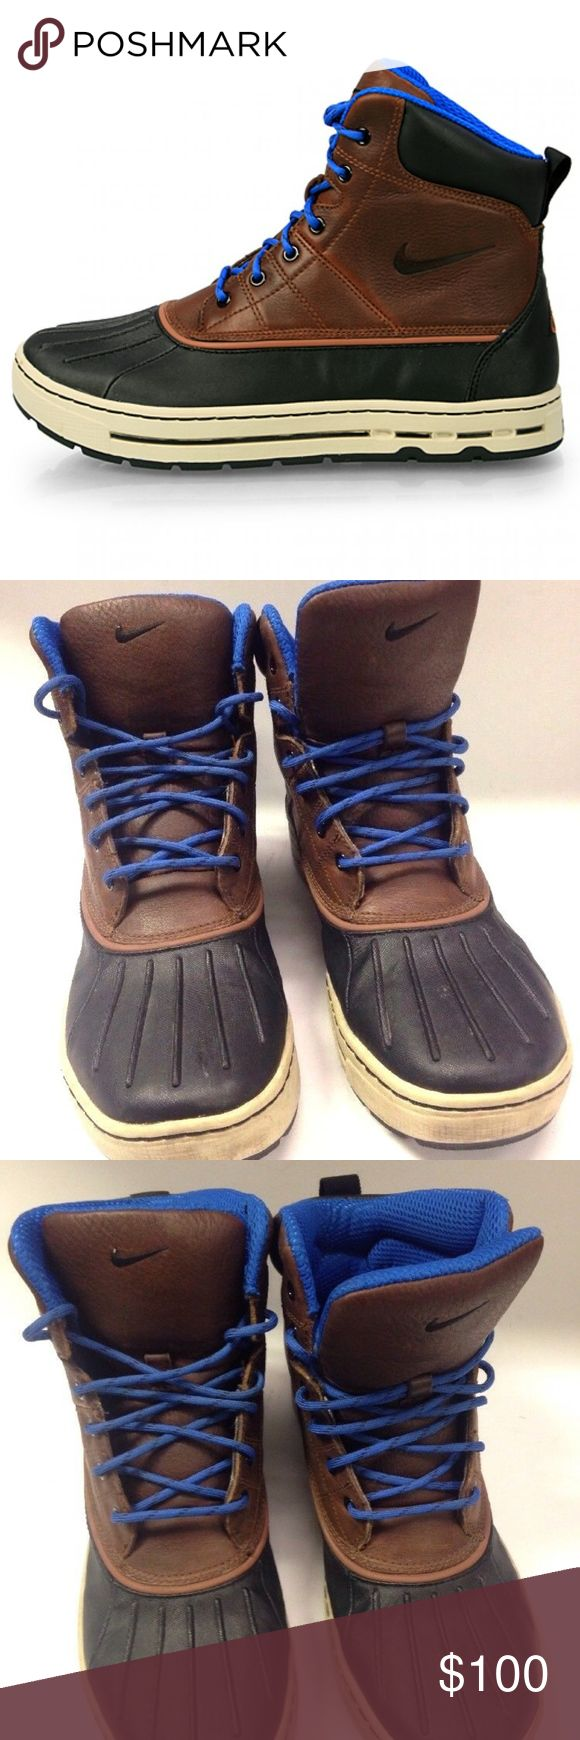 NIKE ACG WOODSIDE 386469-201 DUCK BOOTS leather NICE PAIR OF NIKE ACG WOODSIDE 386469-201 DUCK BOOTS  MEN SIZE 9.5 US  VERY NICE USED CONDITION, LIGHT WEAR Nike ACG Shoes Boots